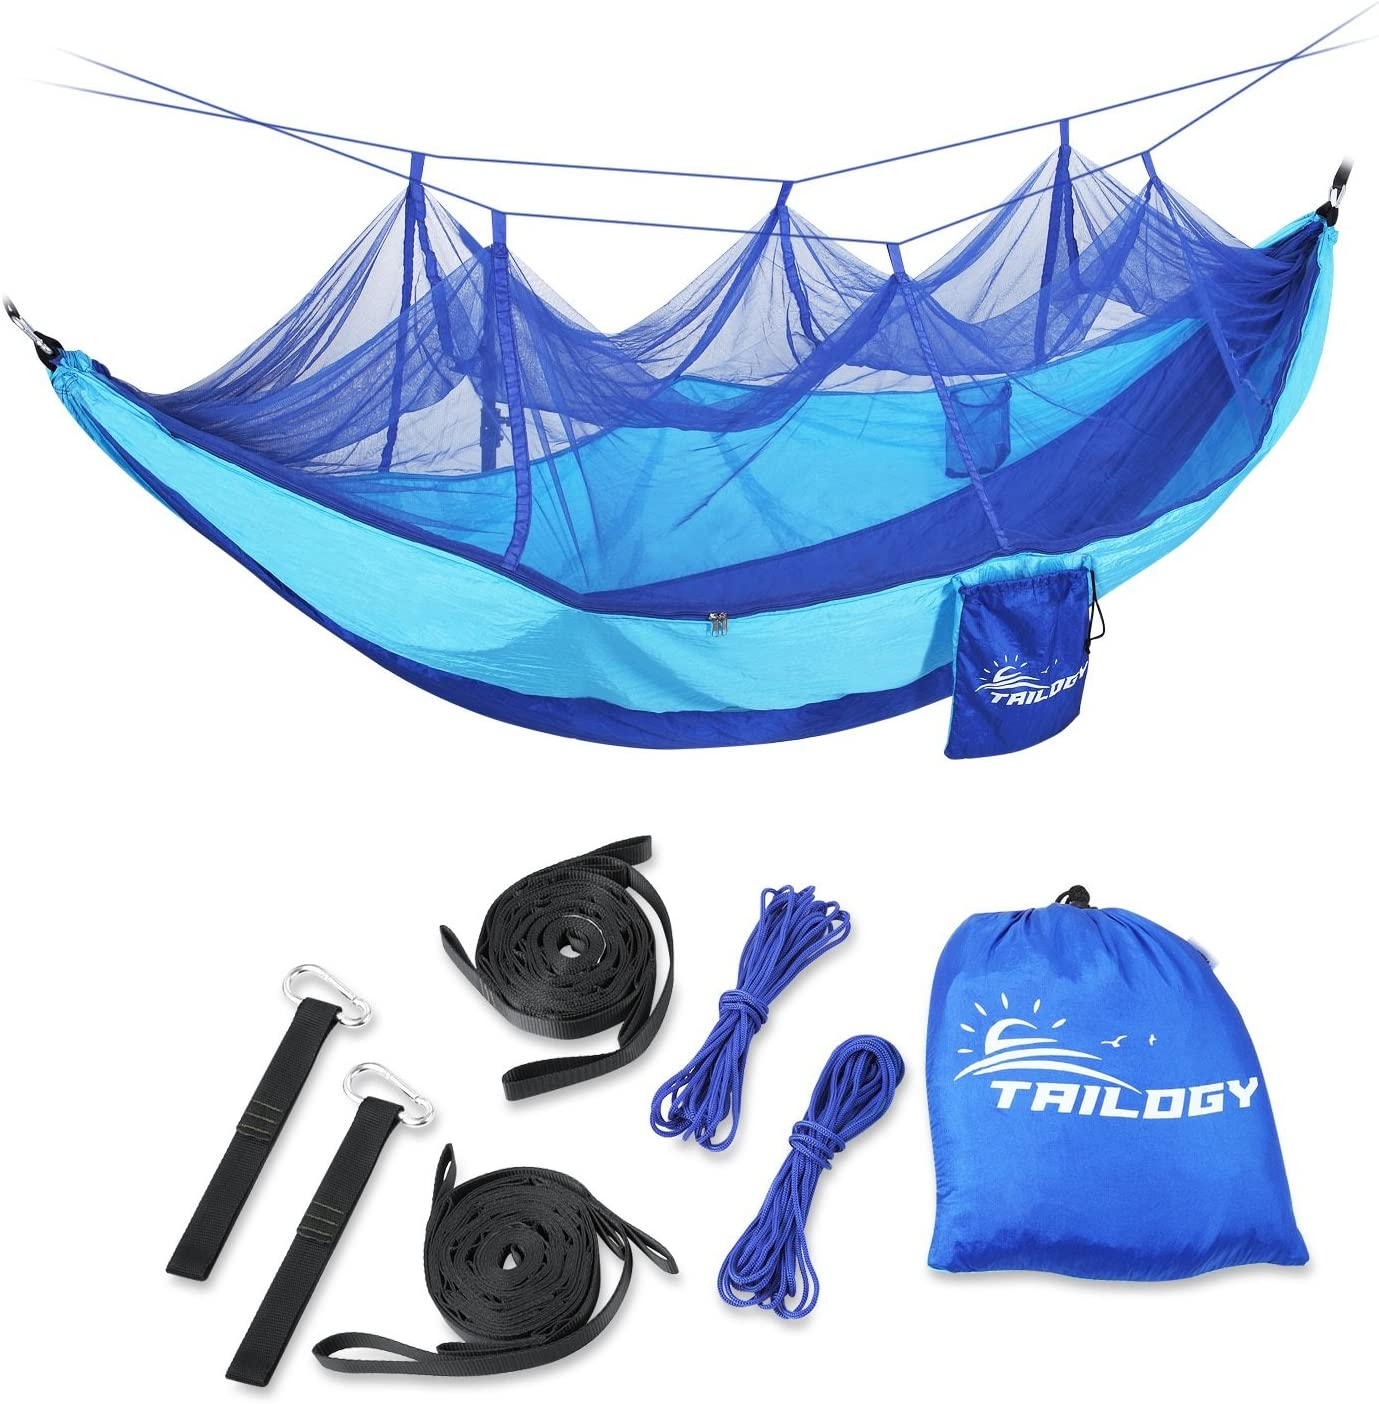 Camping Hammock with Mosquito Net – Lightweight Nylon Portable Double Parachute Hammocks Including Suspension Strap,for Indoor,Outdoor,Hiking,Camping,Backpacking,Travel, Beach, Backyard